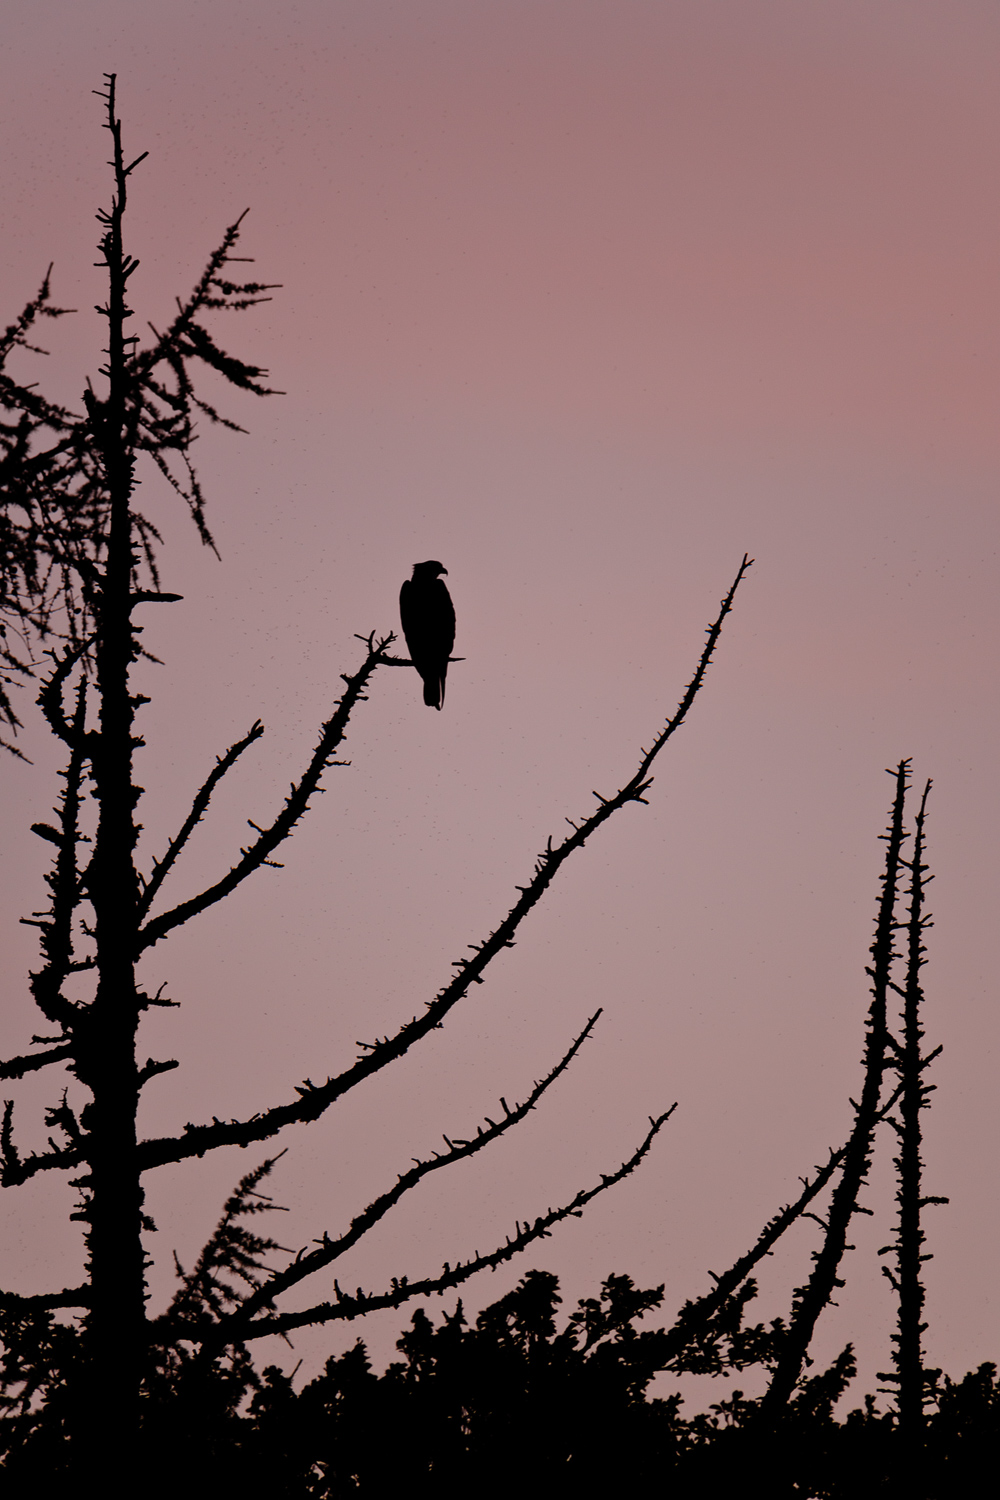 Osprey Silhouetted in a Tree